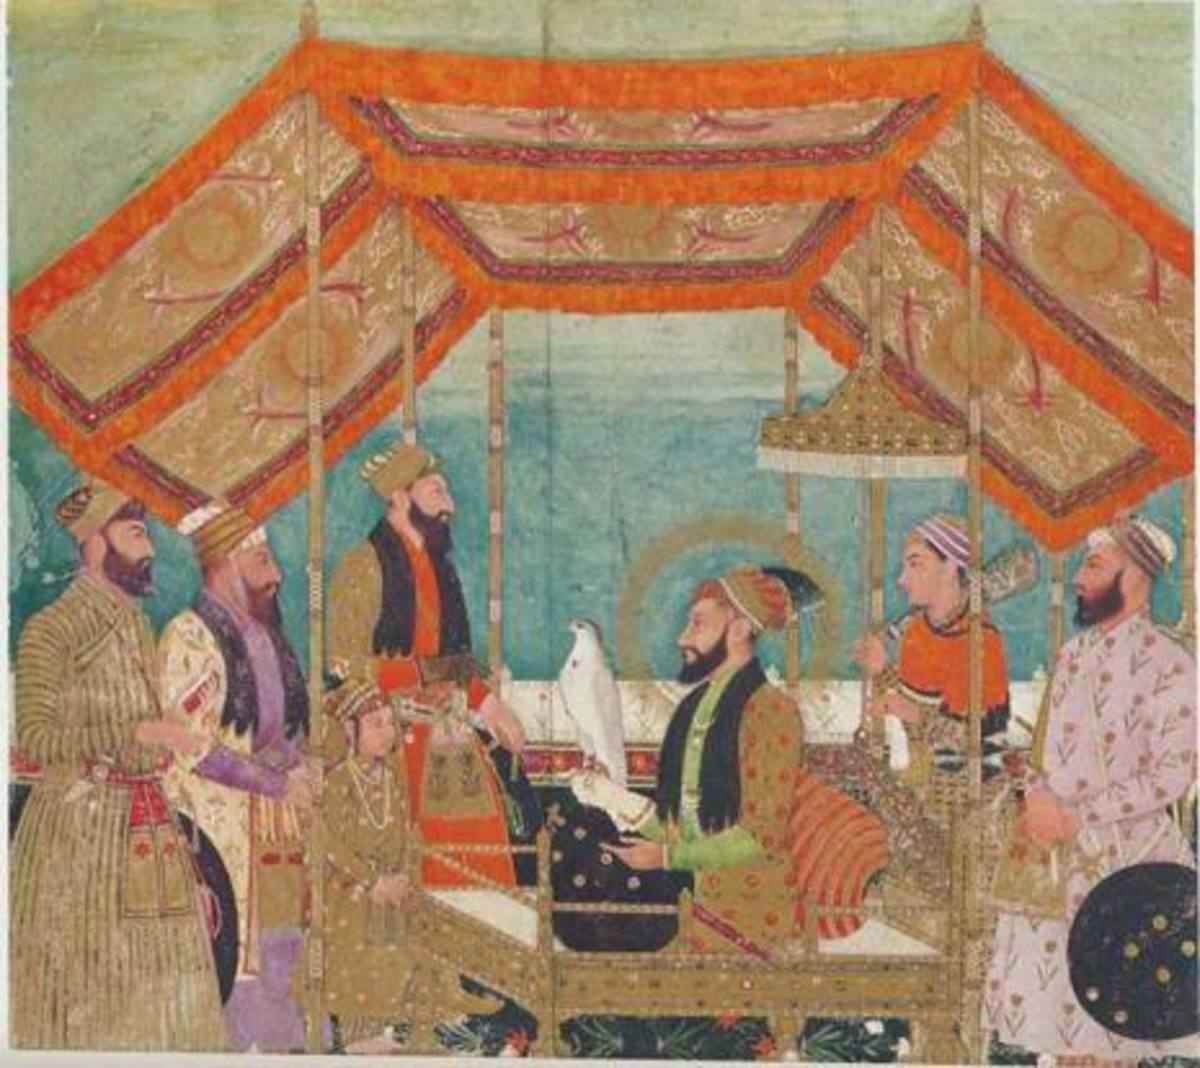 Young Prince Mohammad Azam with his father Emperor Aurangzeb Alamgir, Man standing behind the emperor is Shaista Khan (purple dress).